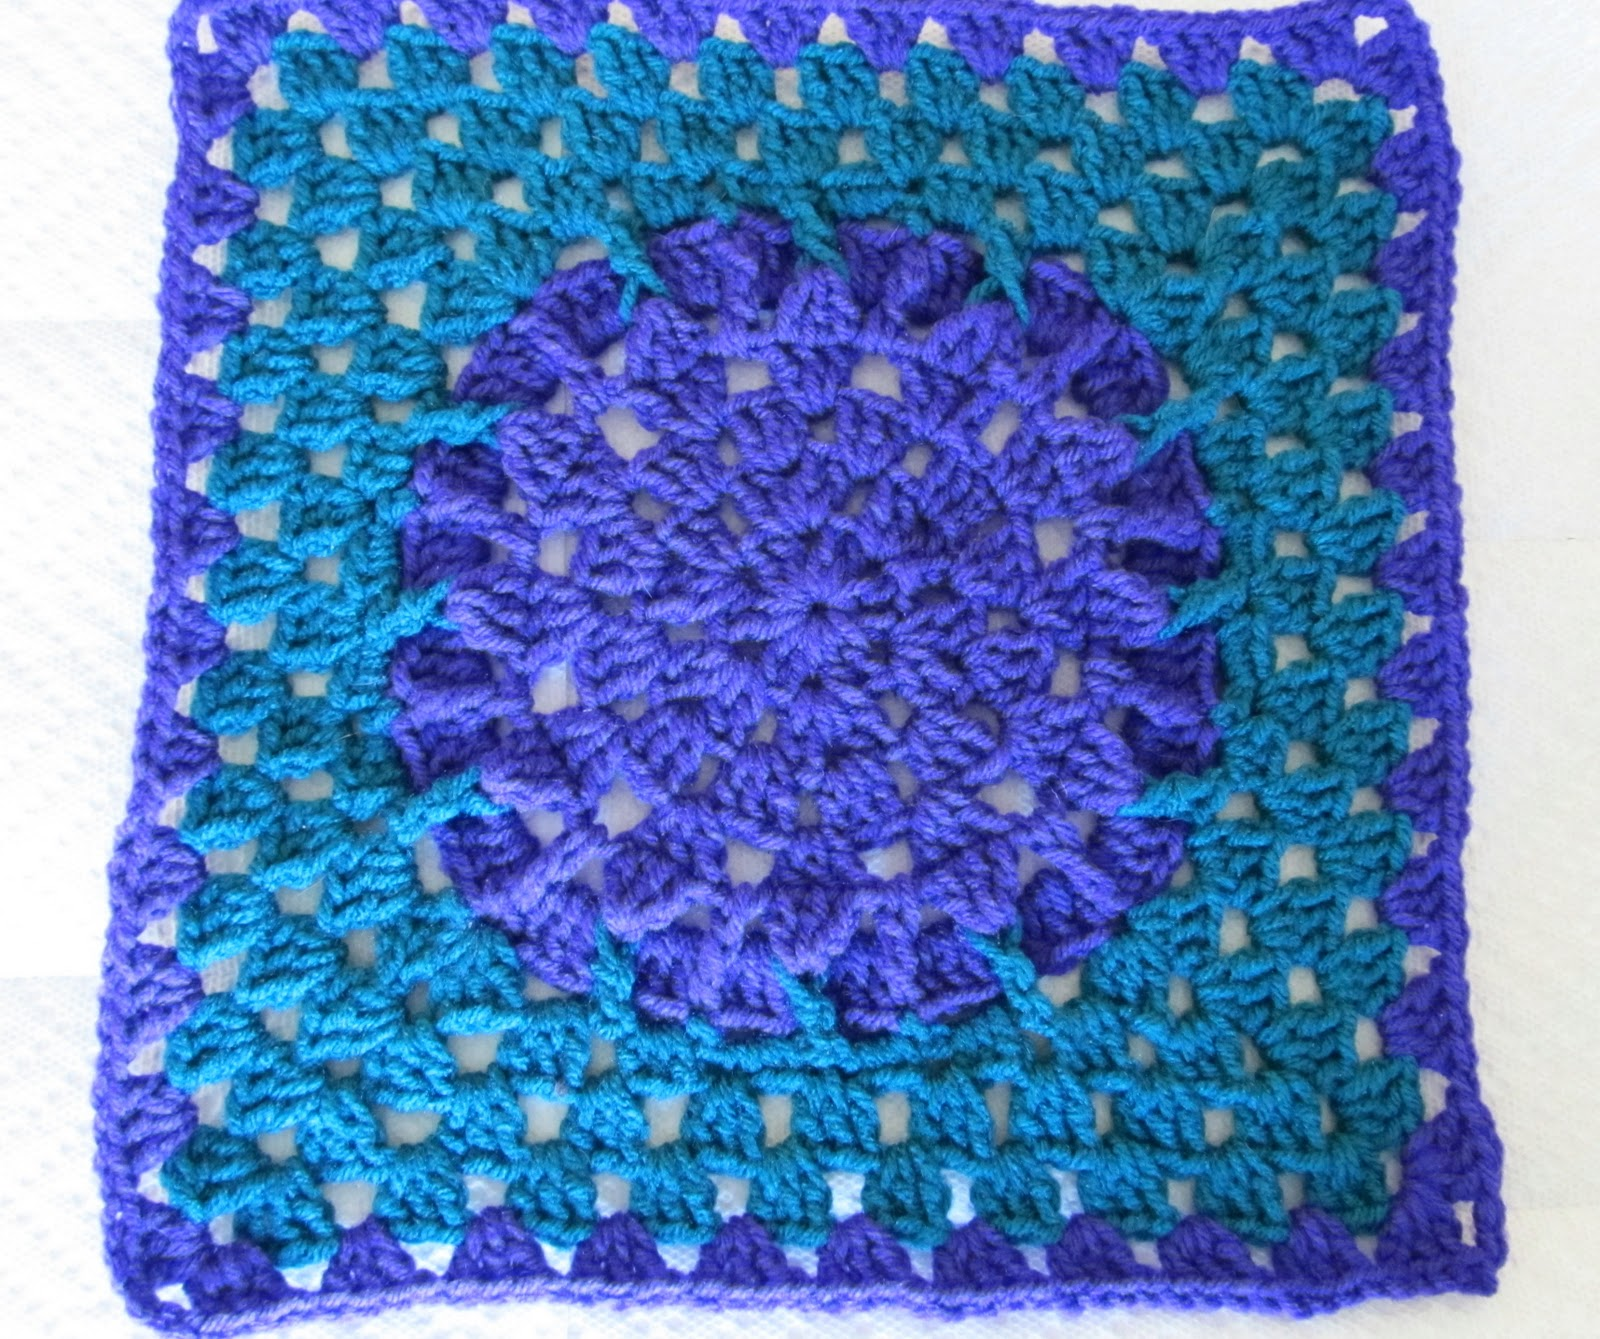 ... and Knit: SmoothFoxs Friends Square 12x12 - Free crochet pattern